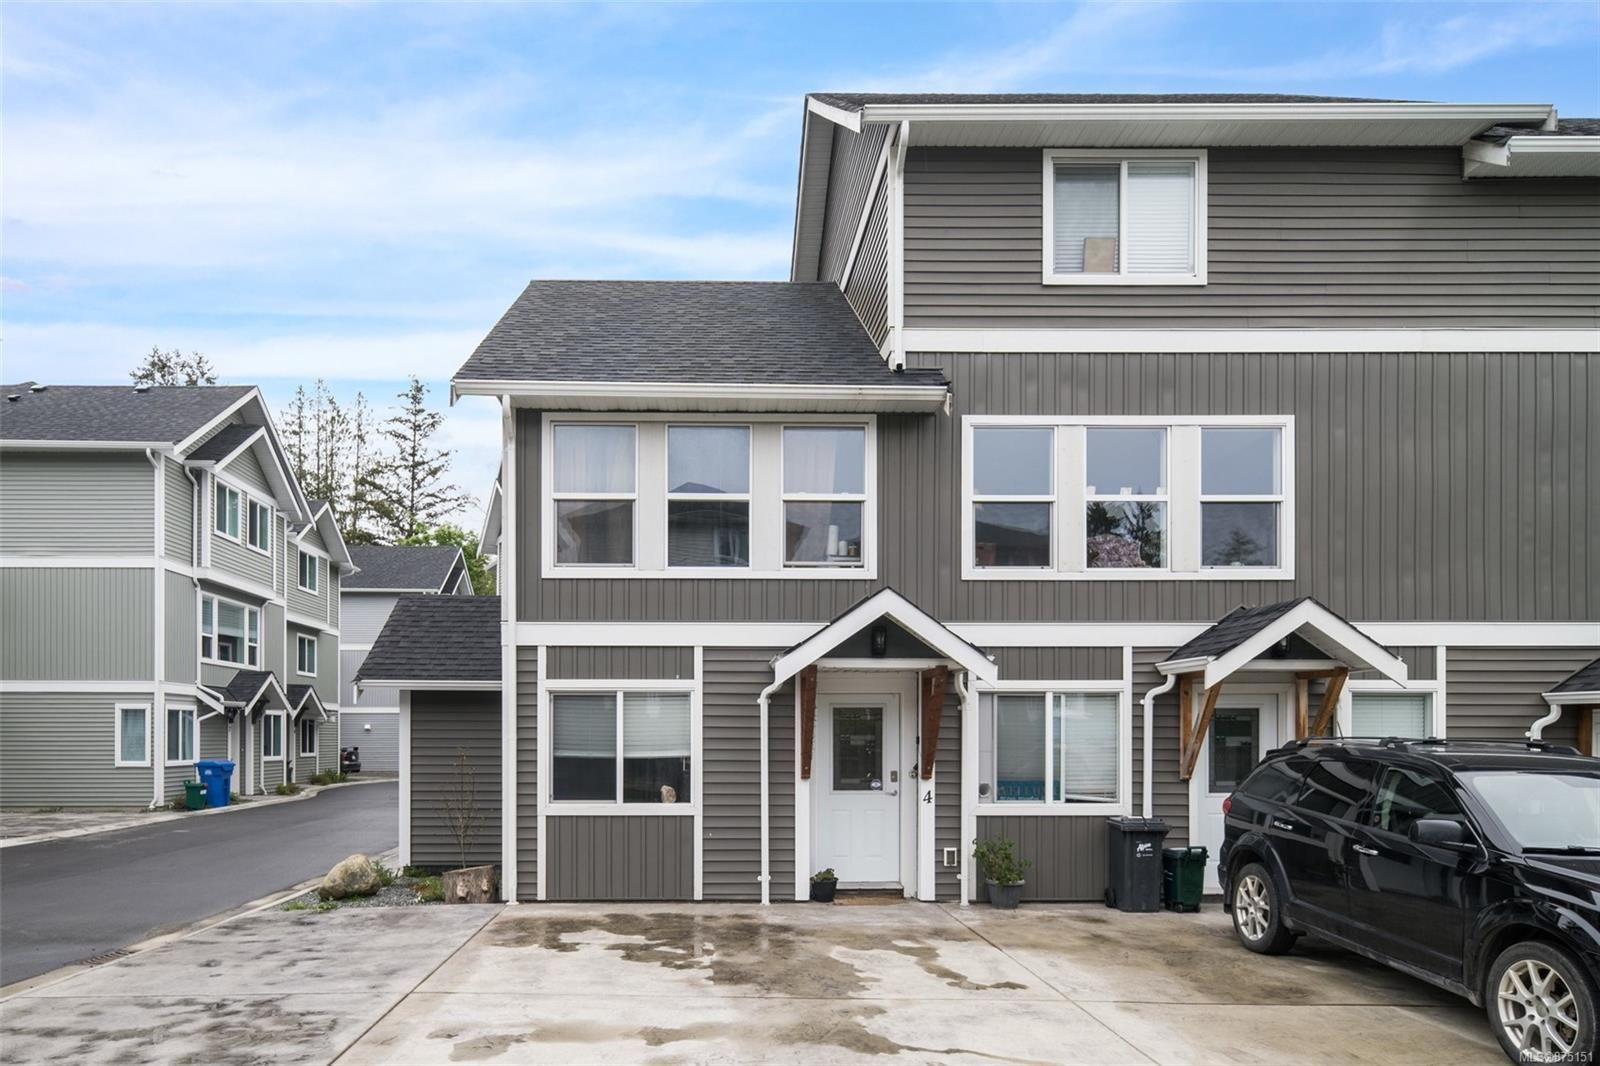 Main Photo: 4 6790 W Grant Rd in : Sk Broomhill Row/Townhouse for sale (Sooke)  : MLS®# 875151